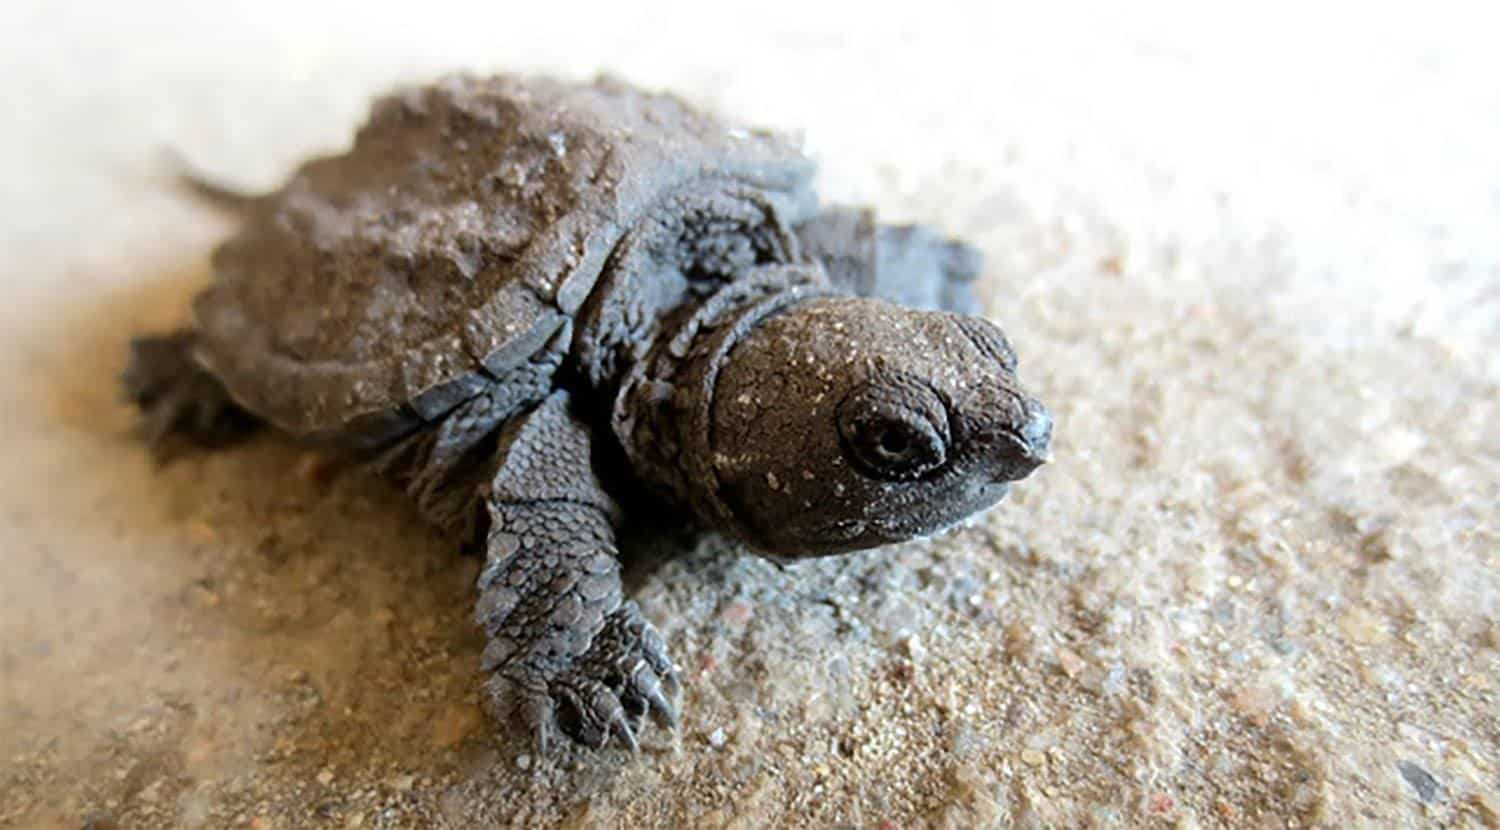 Common Snapping Turtle For Sale Baby Snapping Turtles For